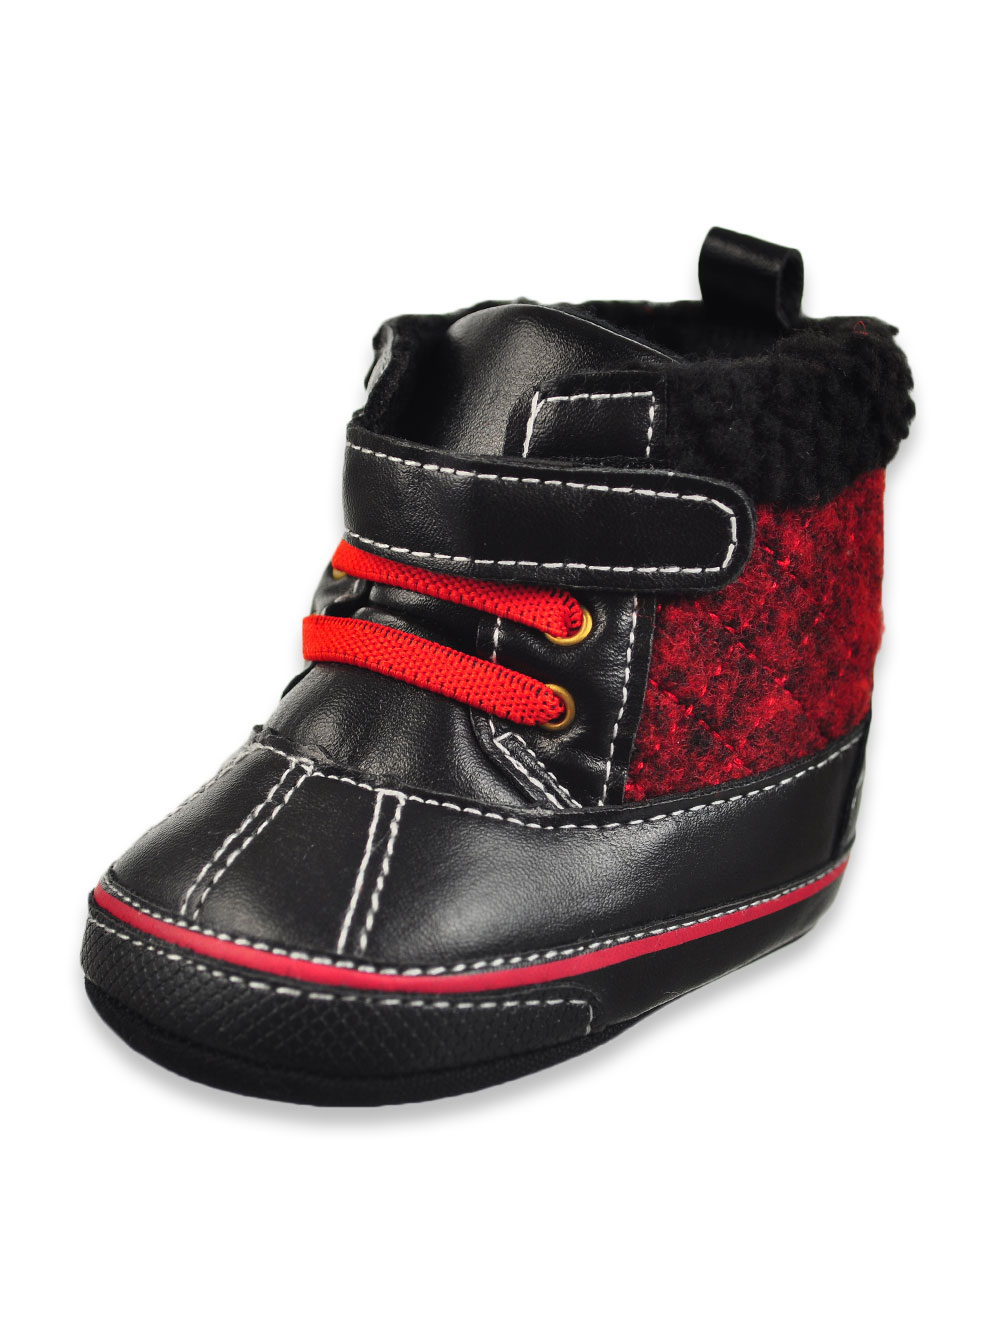 Boys Black and Red Boots